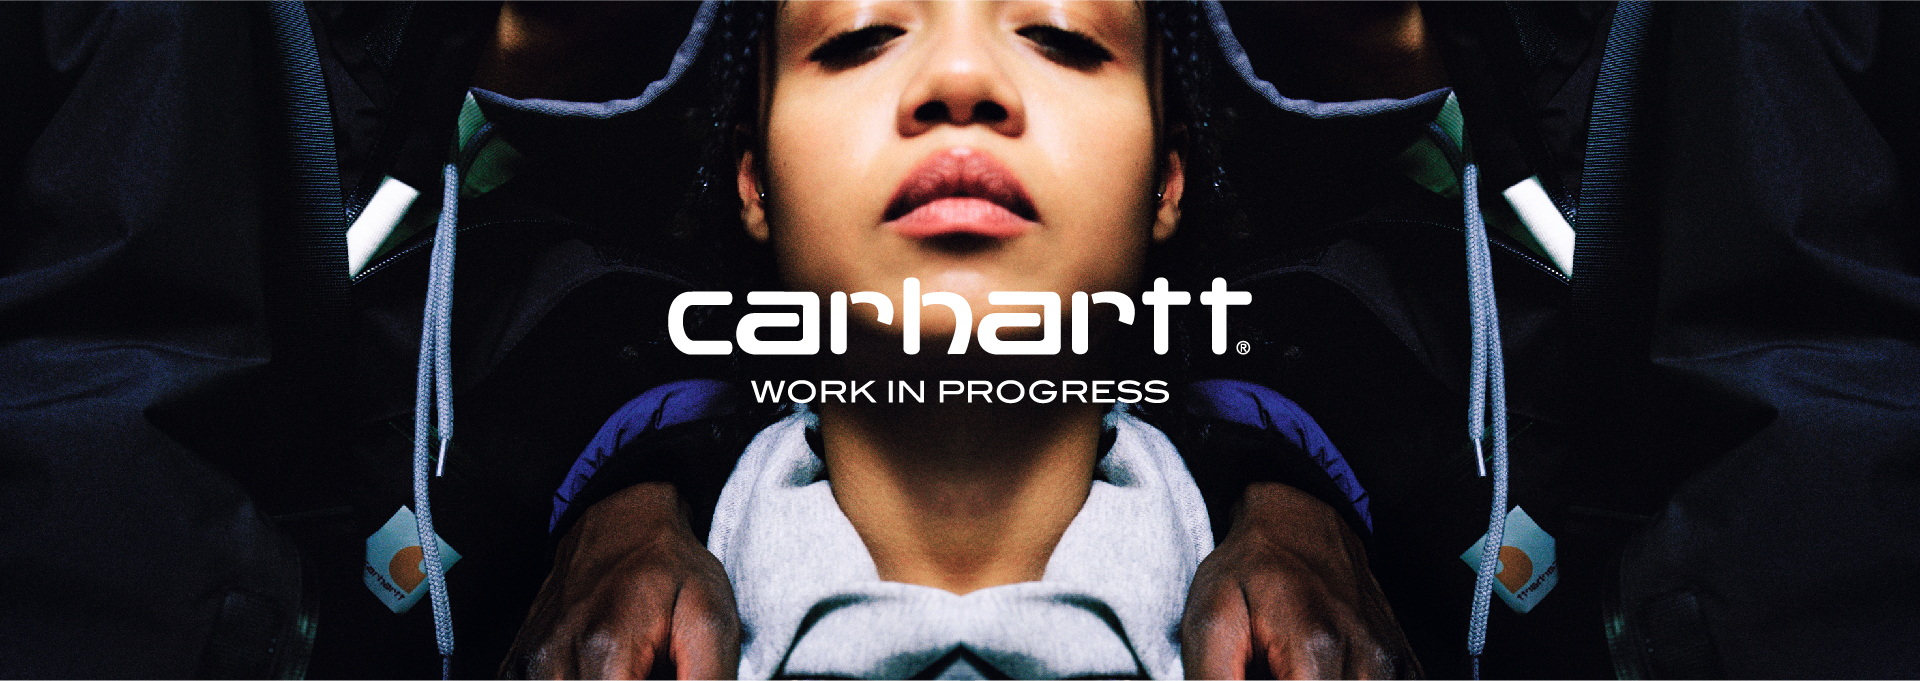 Carhartt WIP FW20 CAMPAIGN IMAGE_1920X680px-02